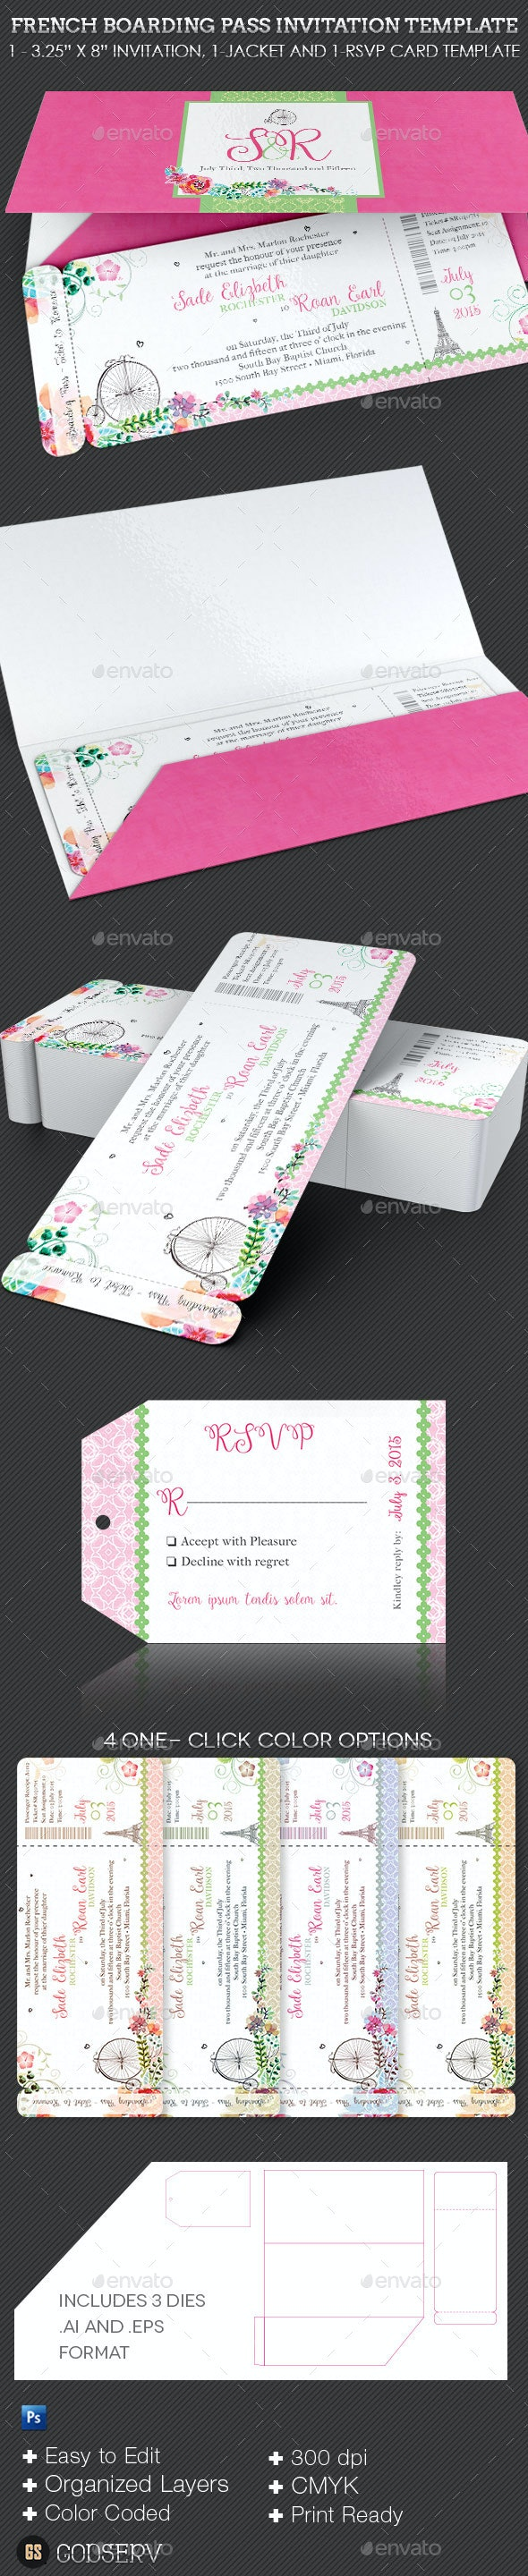 French Wedding Boarding Pass Invitation Template - Weddings Cards & Invites